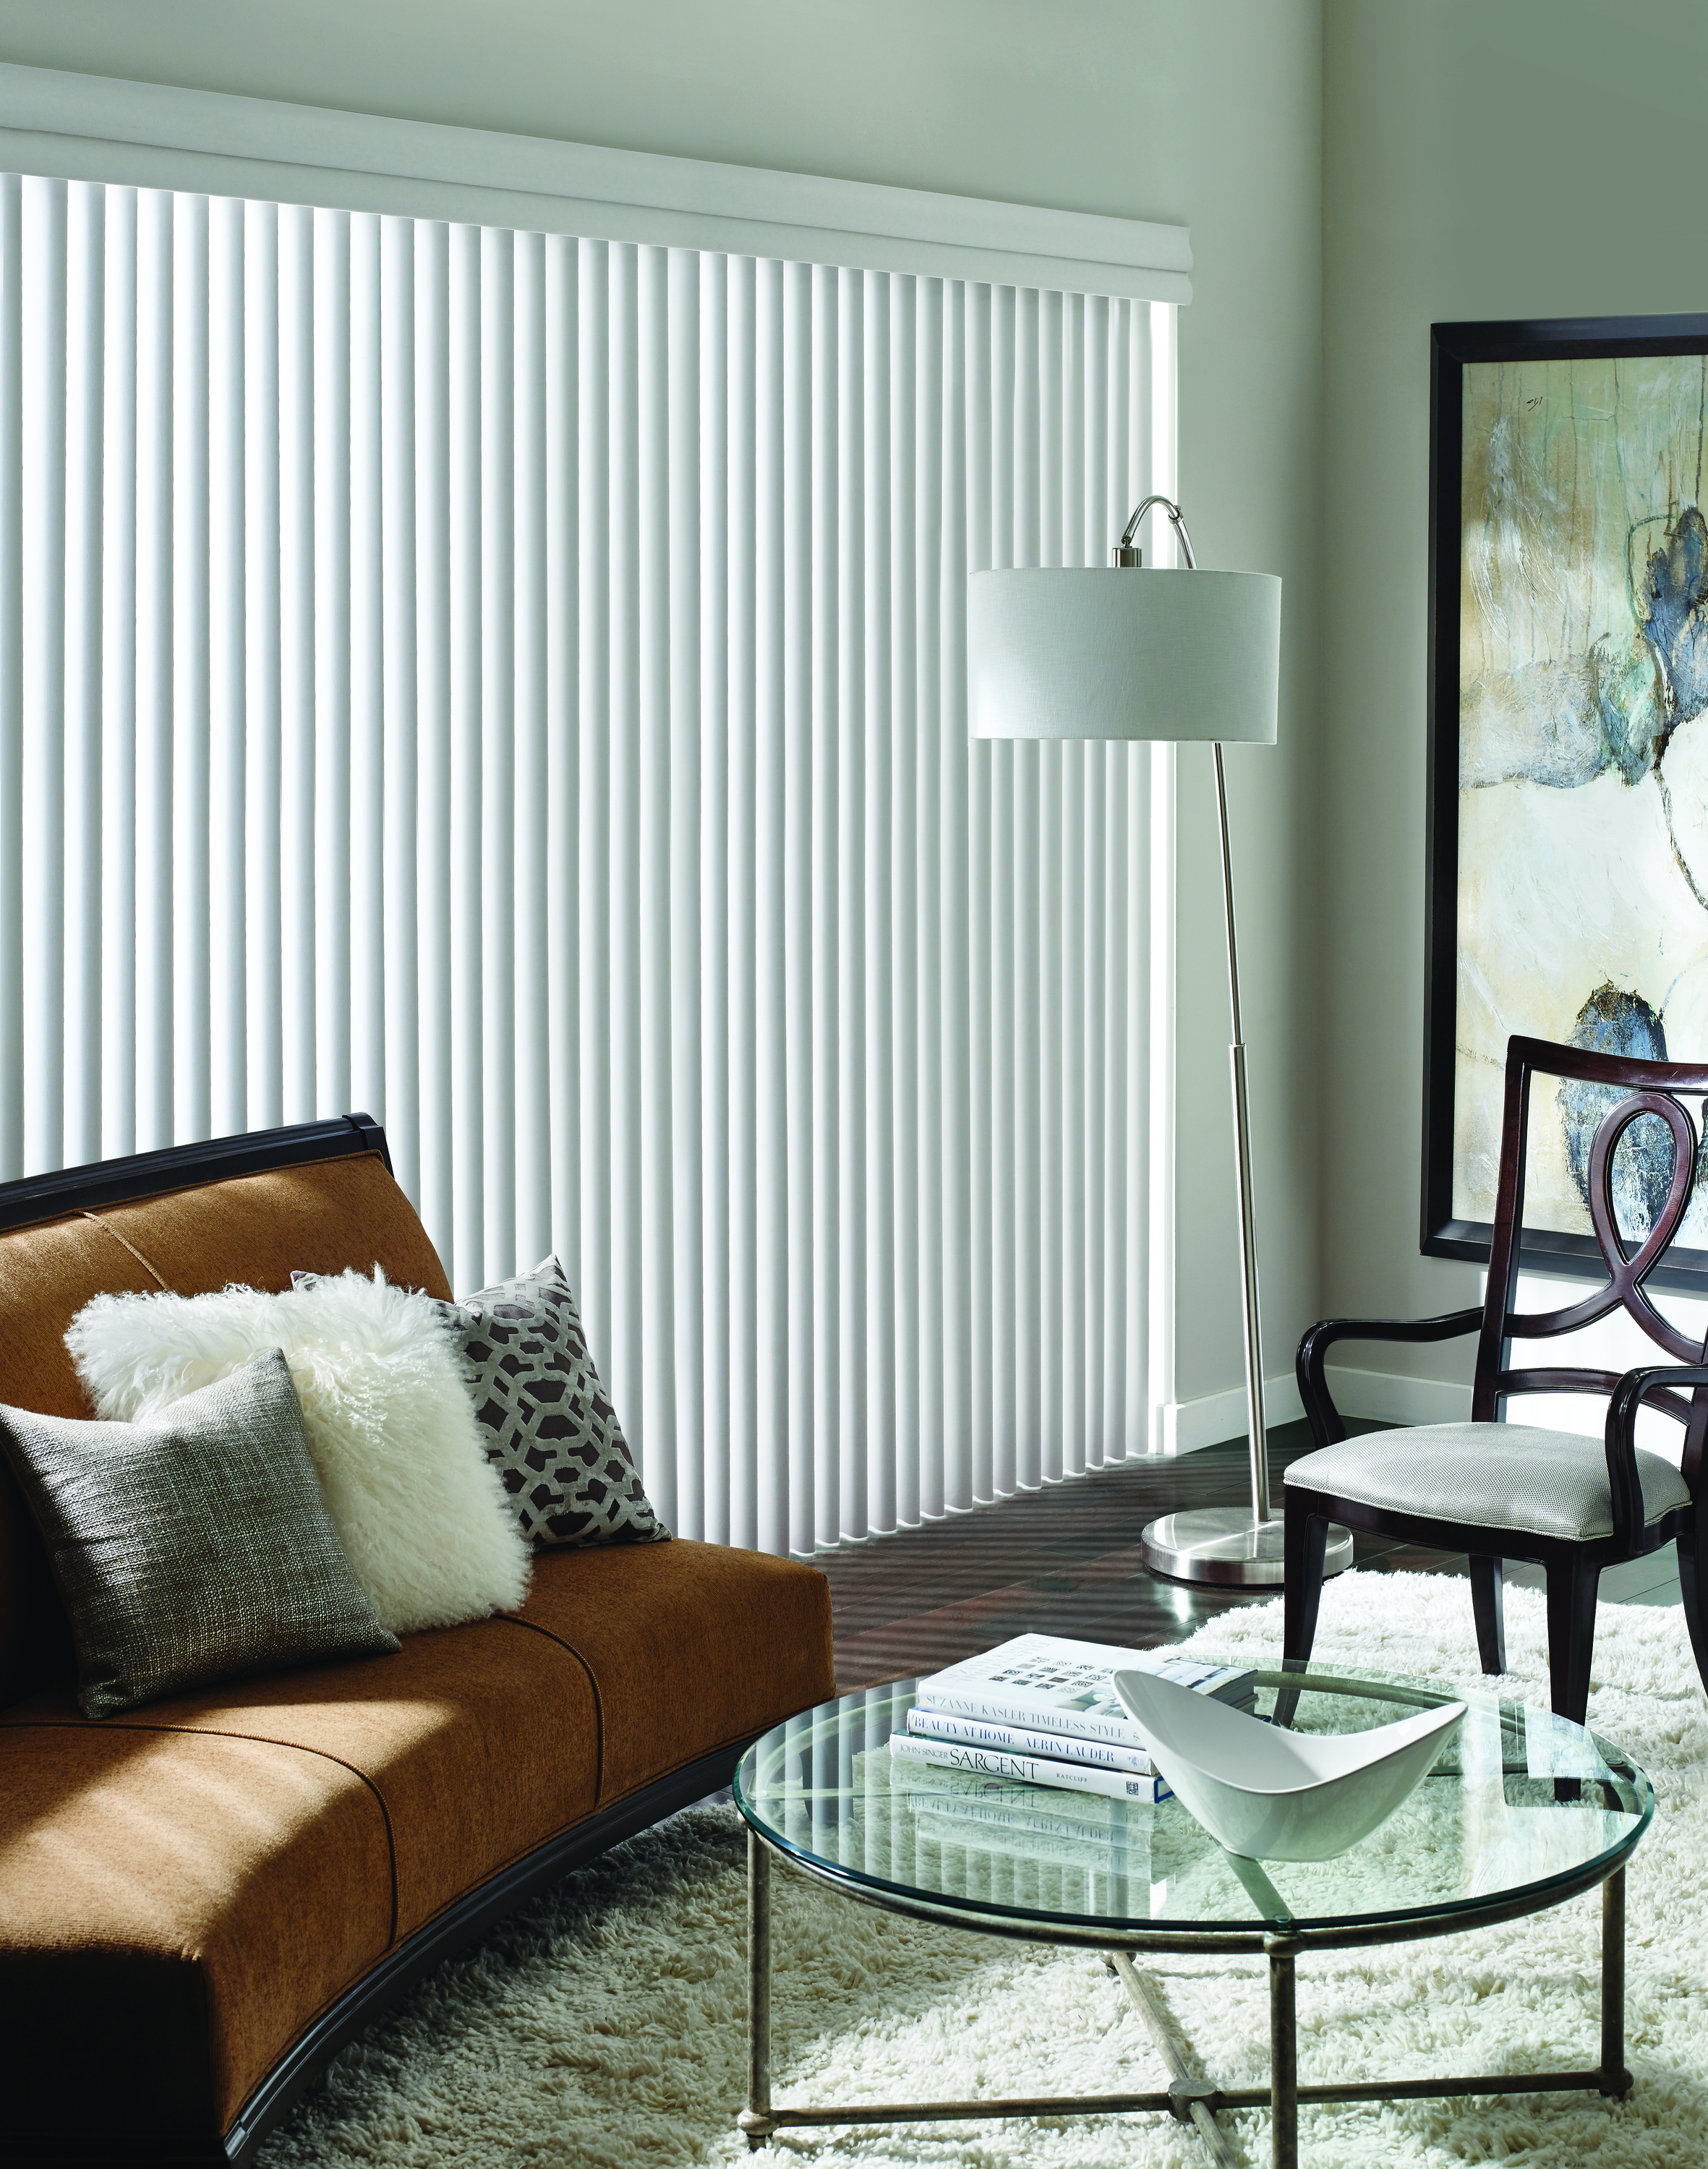 1. Vertical Blinds - An original in covering sliding patio doors are Verticals and they just keep transforming into something new as you'll see - Next!Pros: PVC verticals are easy-to-clean, easier-to-operate, and great for larger windows. A great choice for modern interiors.Cons: We are frequently asked: